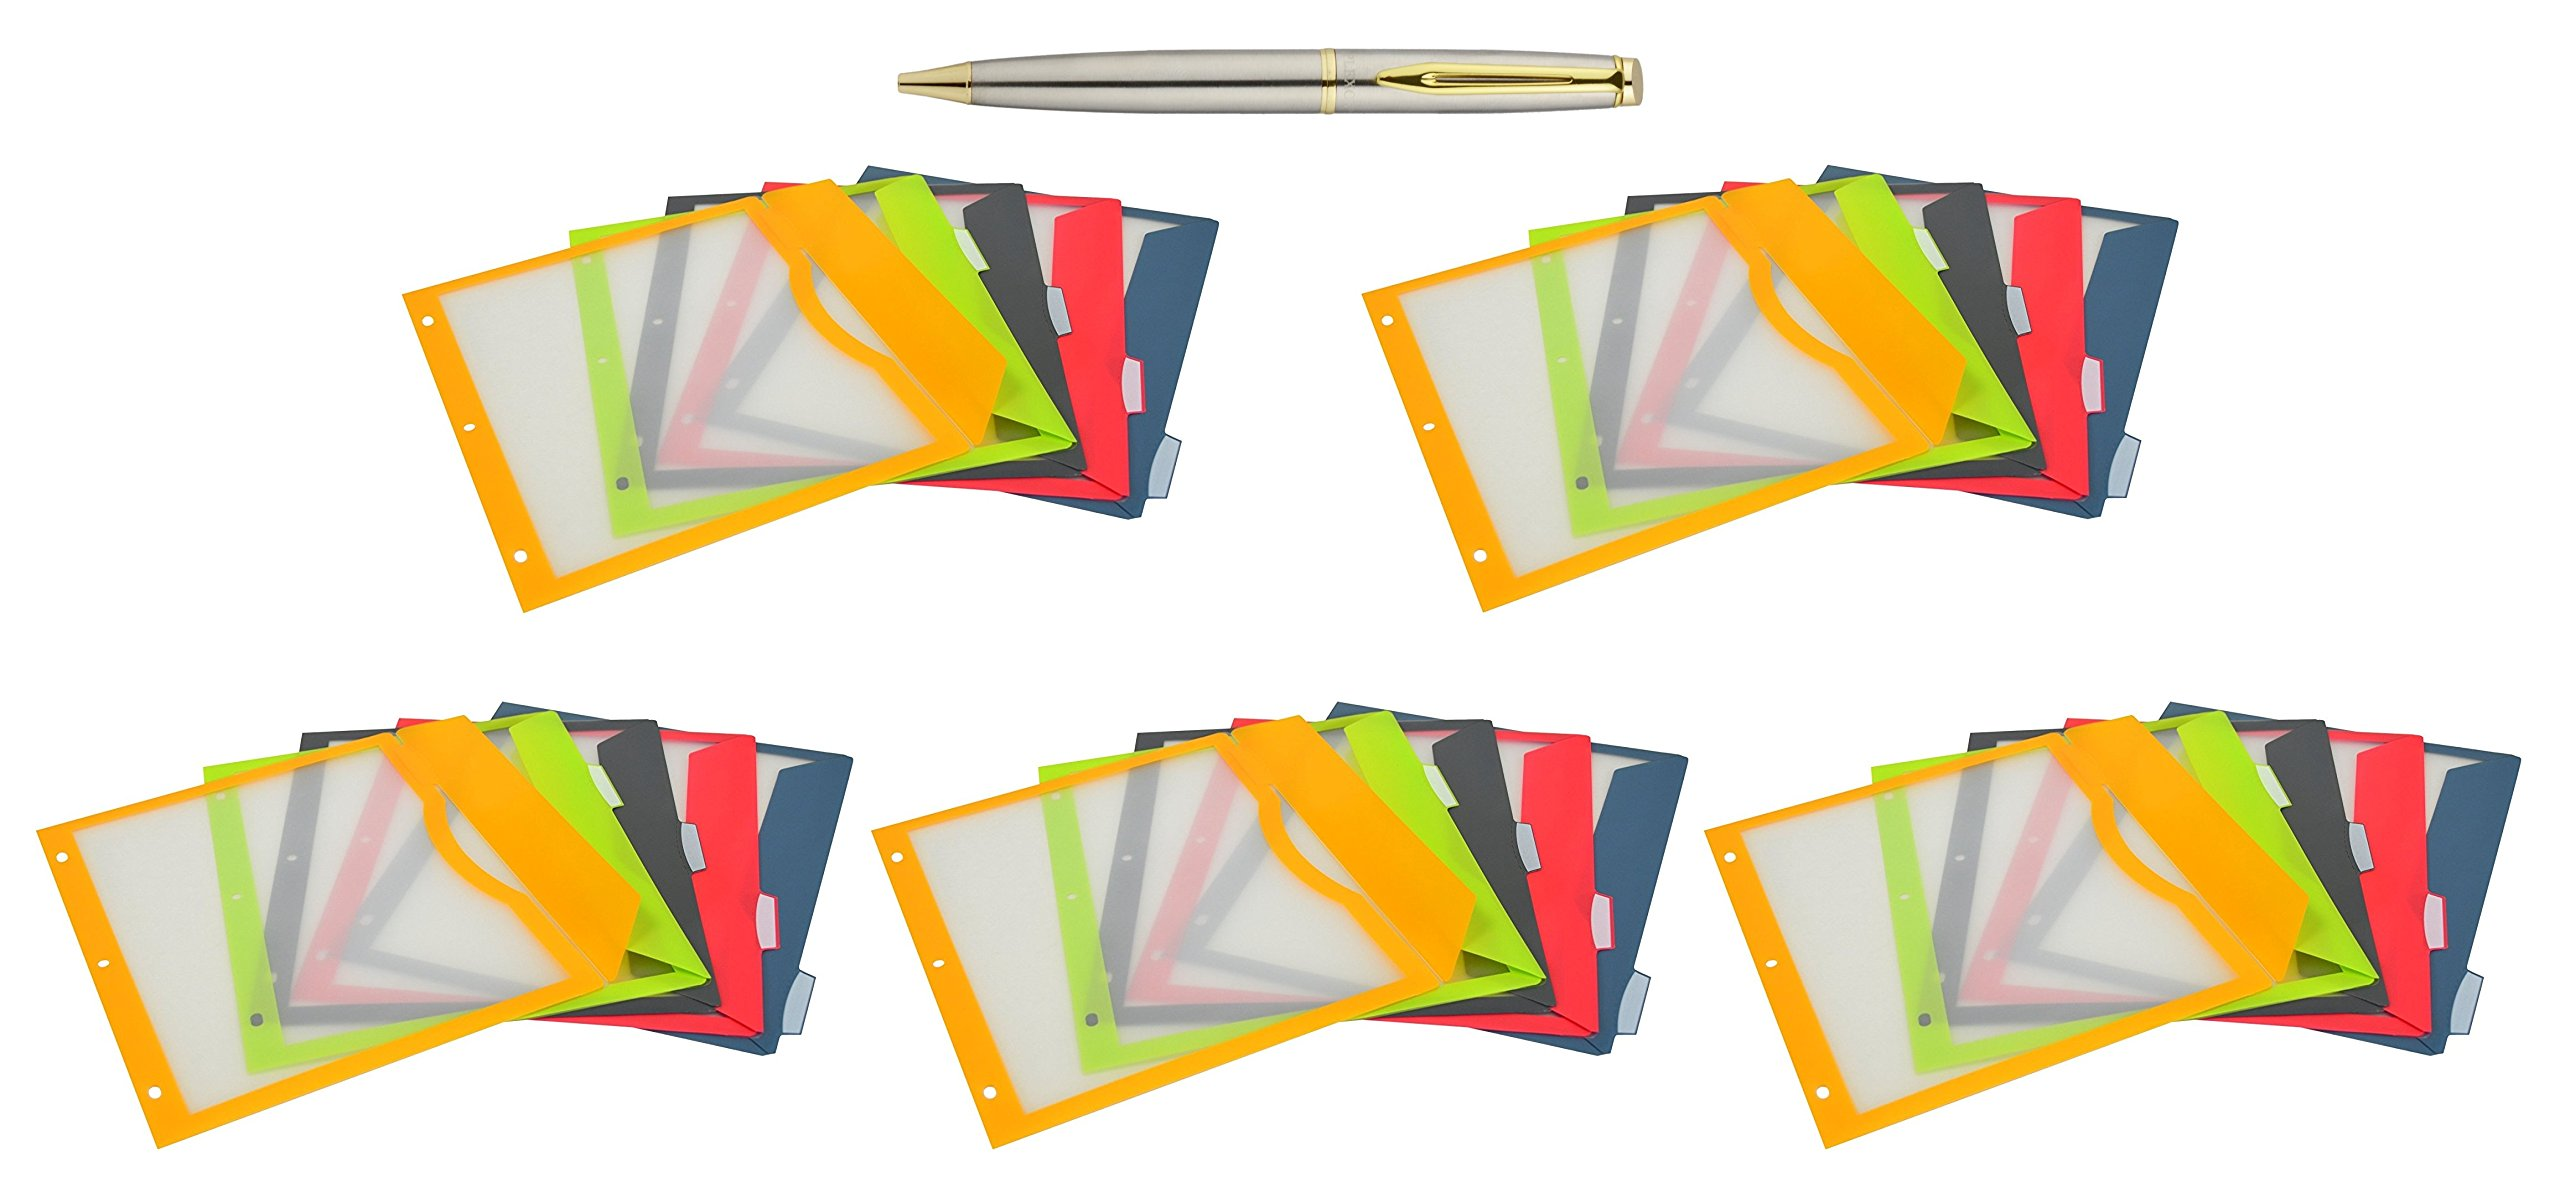 C-Line 5-Tab Binder Pockets with Write-On Index Tabs, Assorted Colors, 8.5 x 11 inches, 25 Pockets per Pack, Bundled with a Plexon Pen